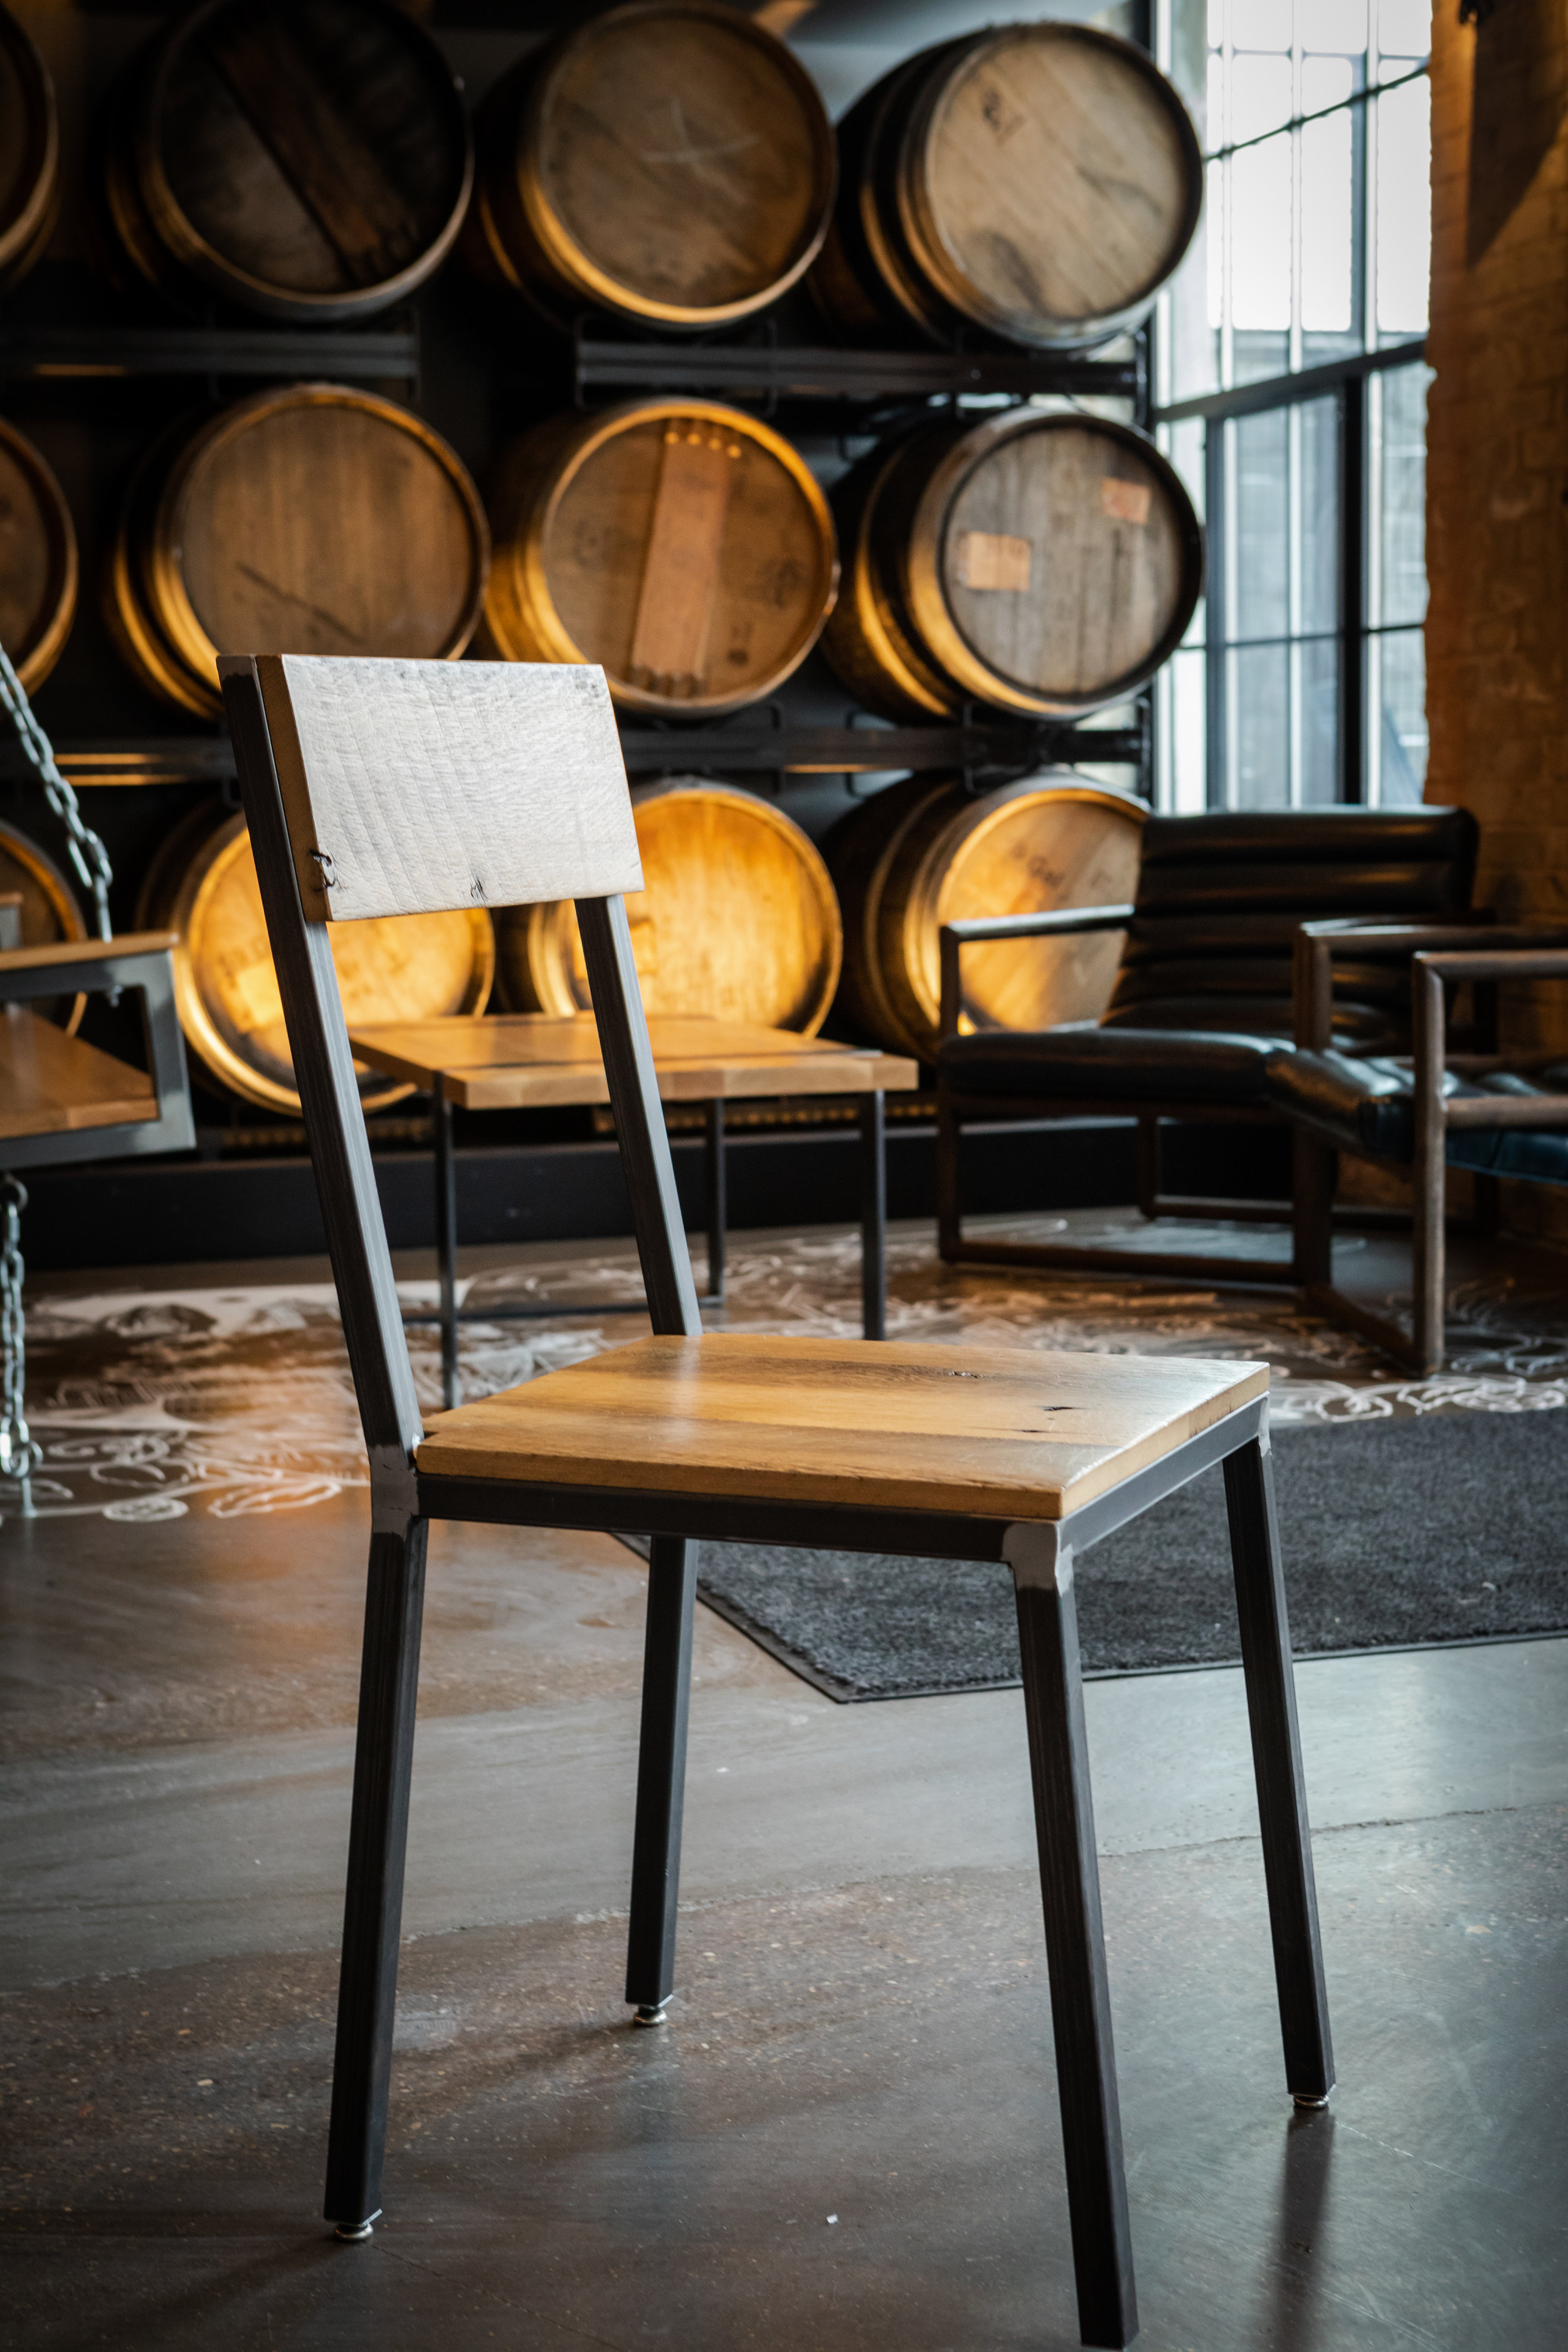 Edgework Creative Everyday Dining Chair  - This style was created for Elm & Iron and has sold out, but they also offer custom work that could be recreated if interested. Also available in two other styles that are still in stock: Laid Back & All Frame.